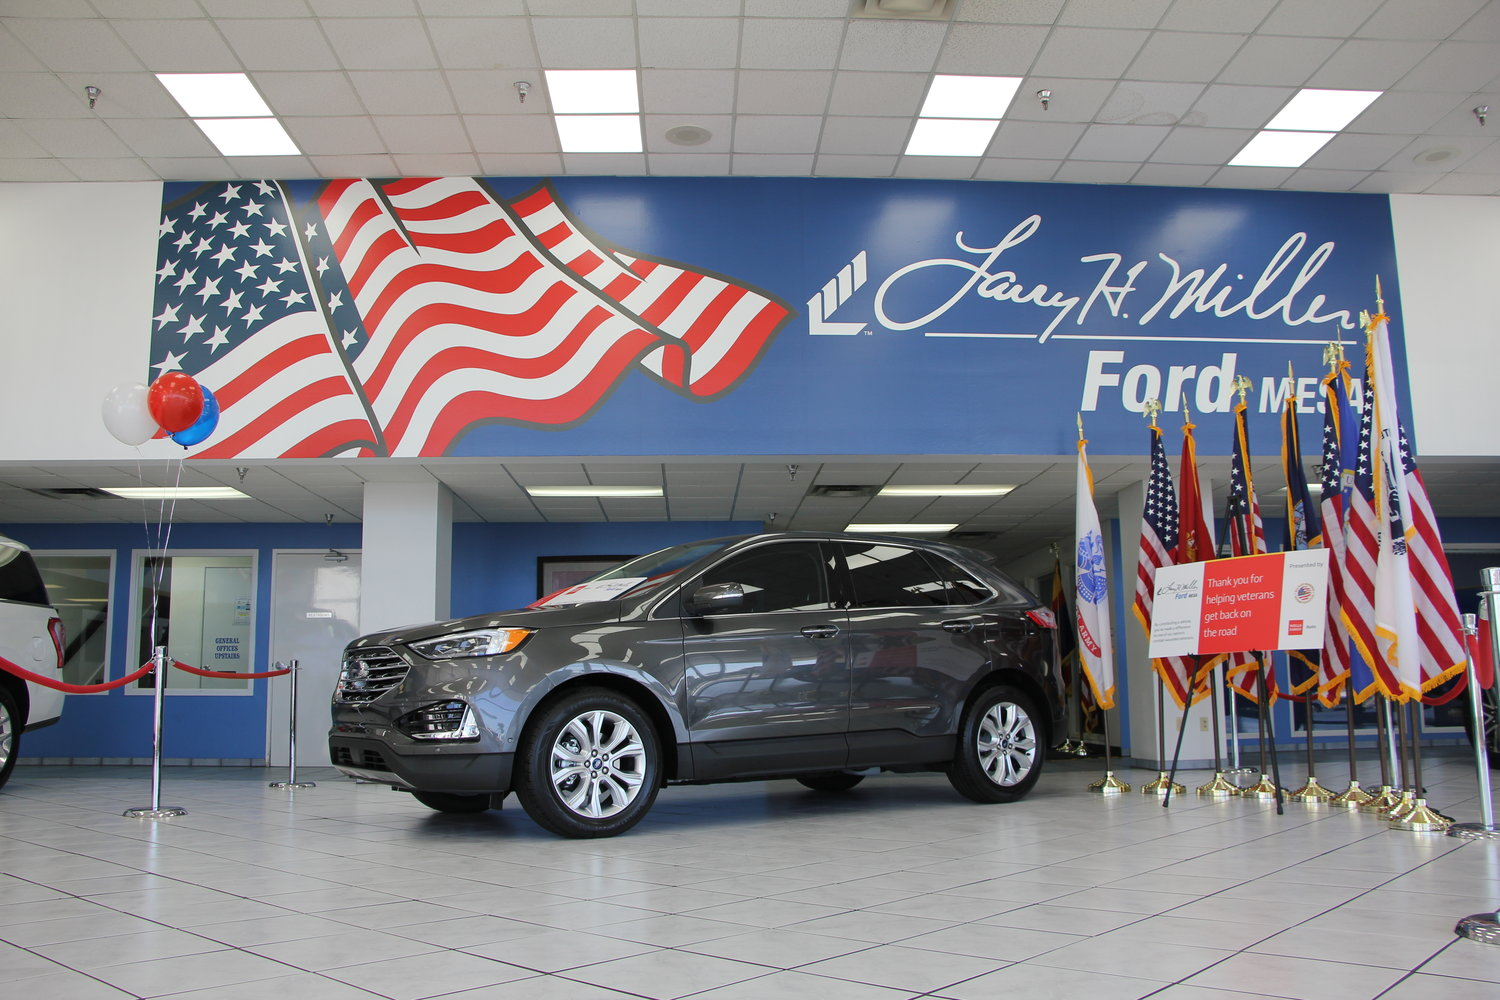 The donated 2020 Ford TRKS Edge.